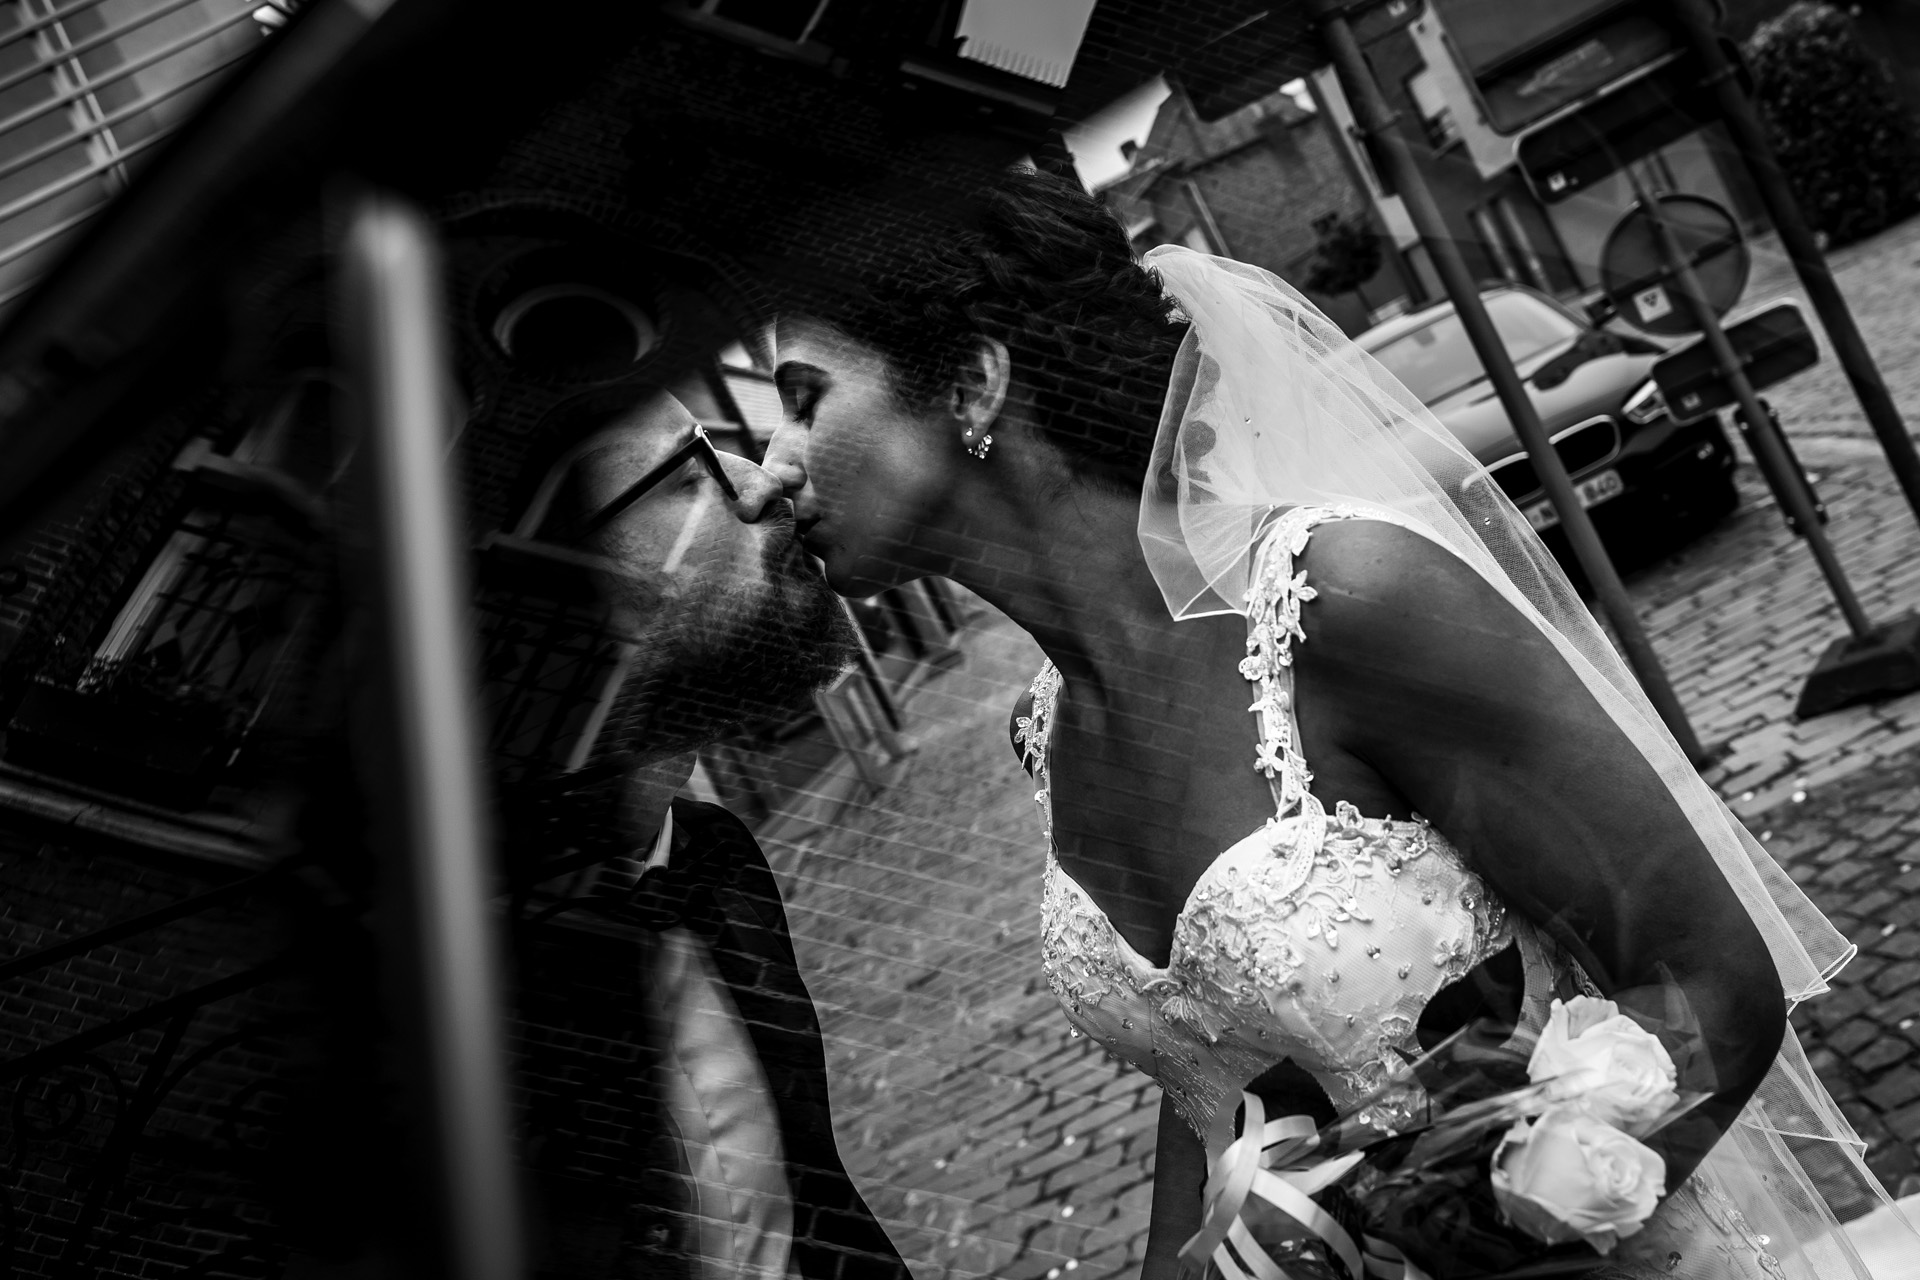 Antwerp Elopement Photo | Through the reflection in the car window we can see the bride and groom sharing a kiss